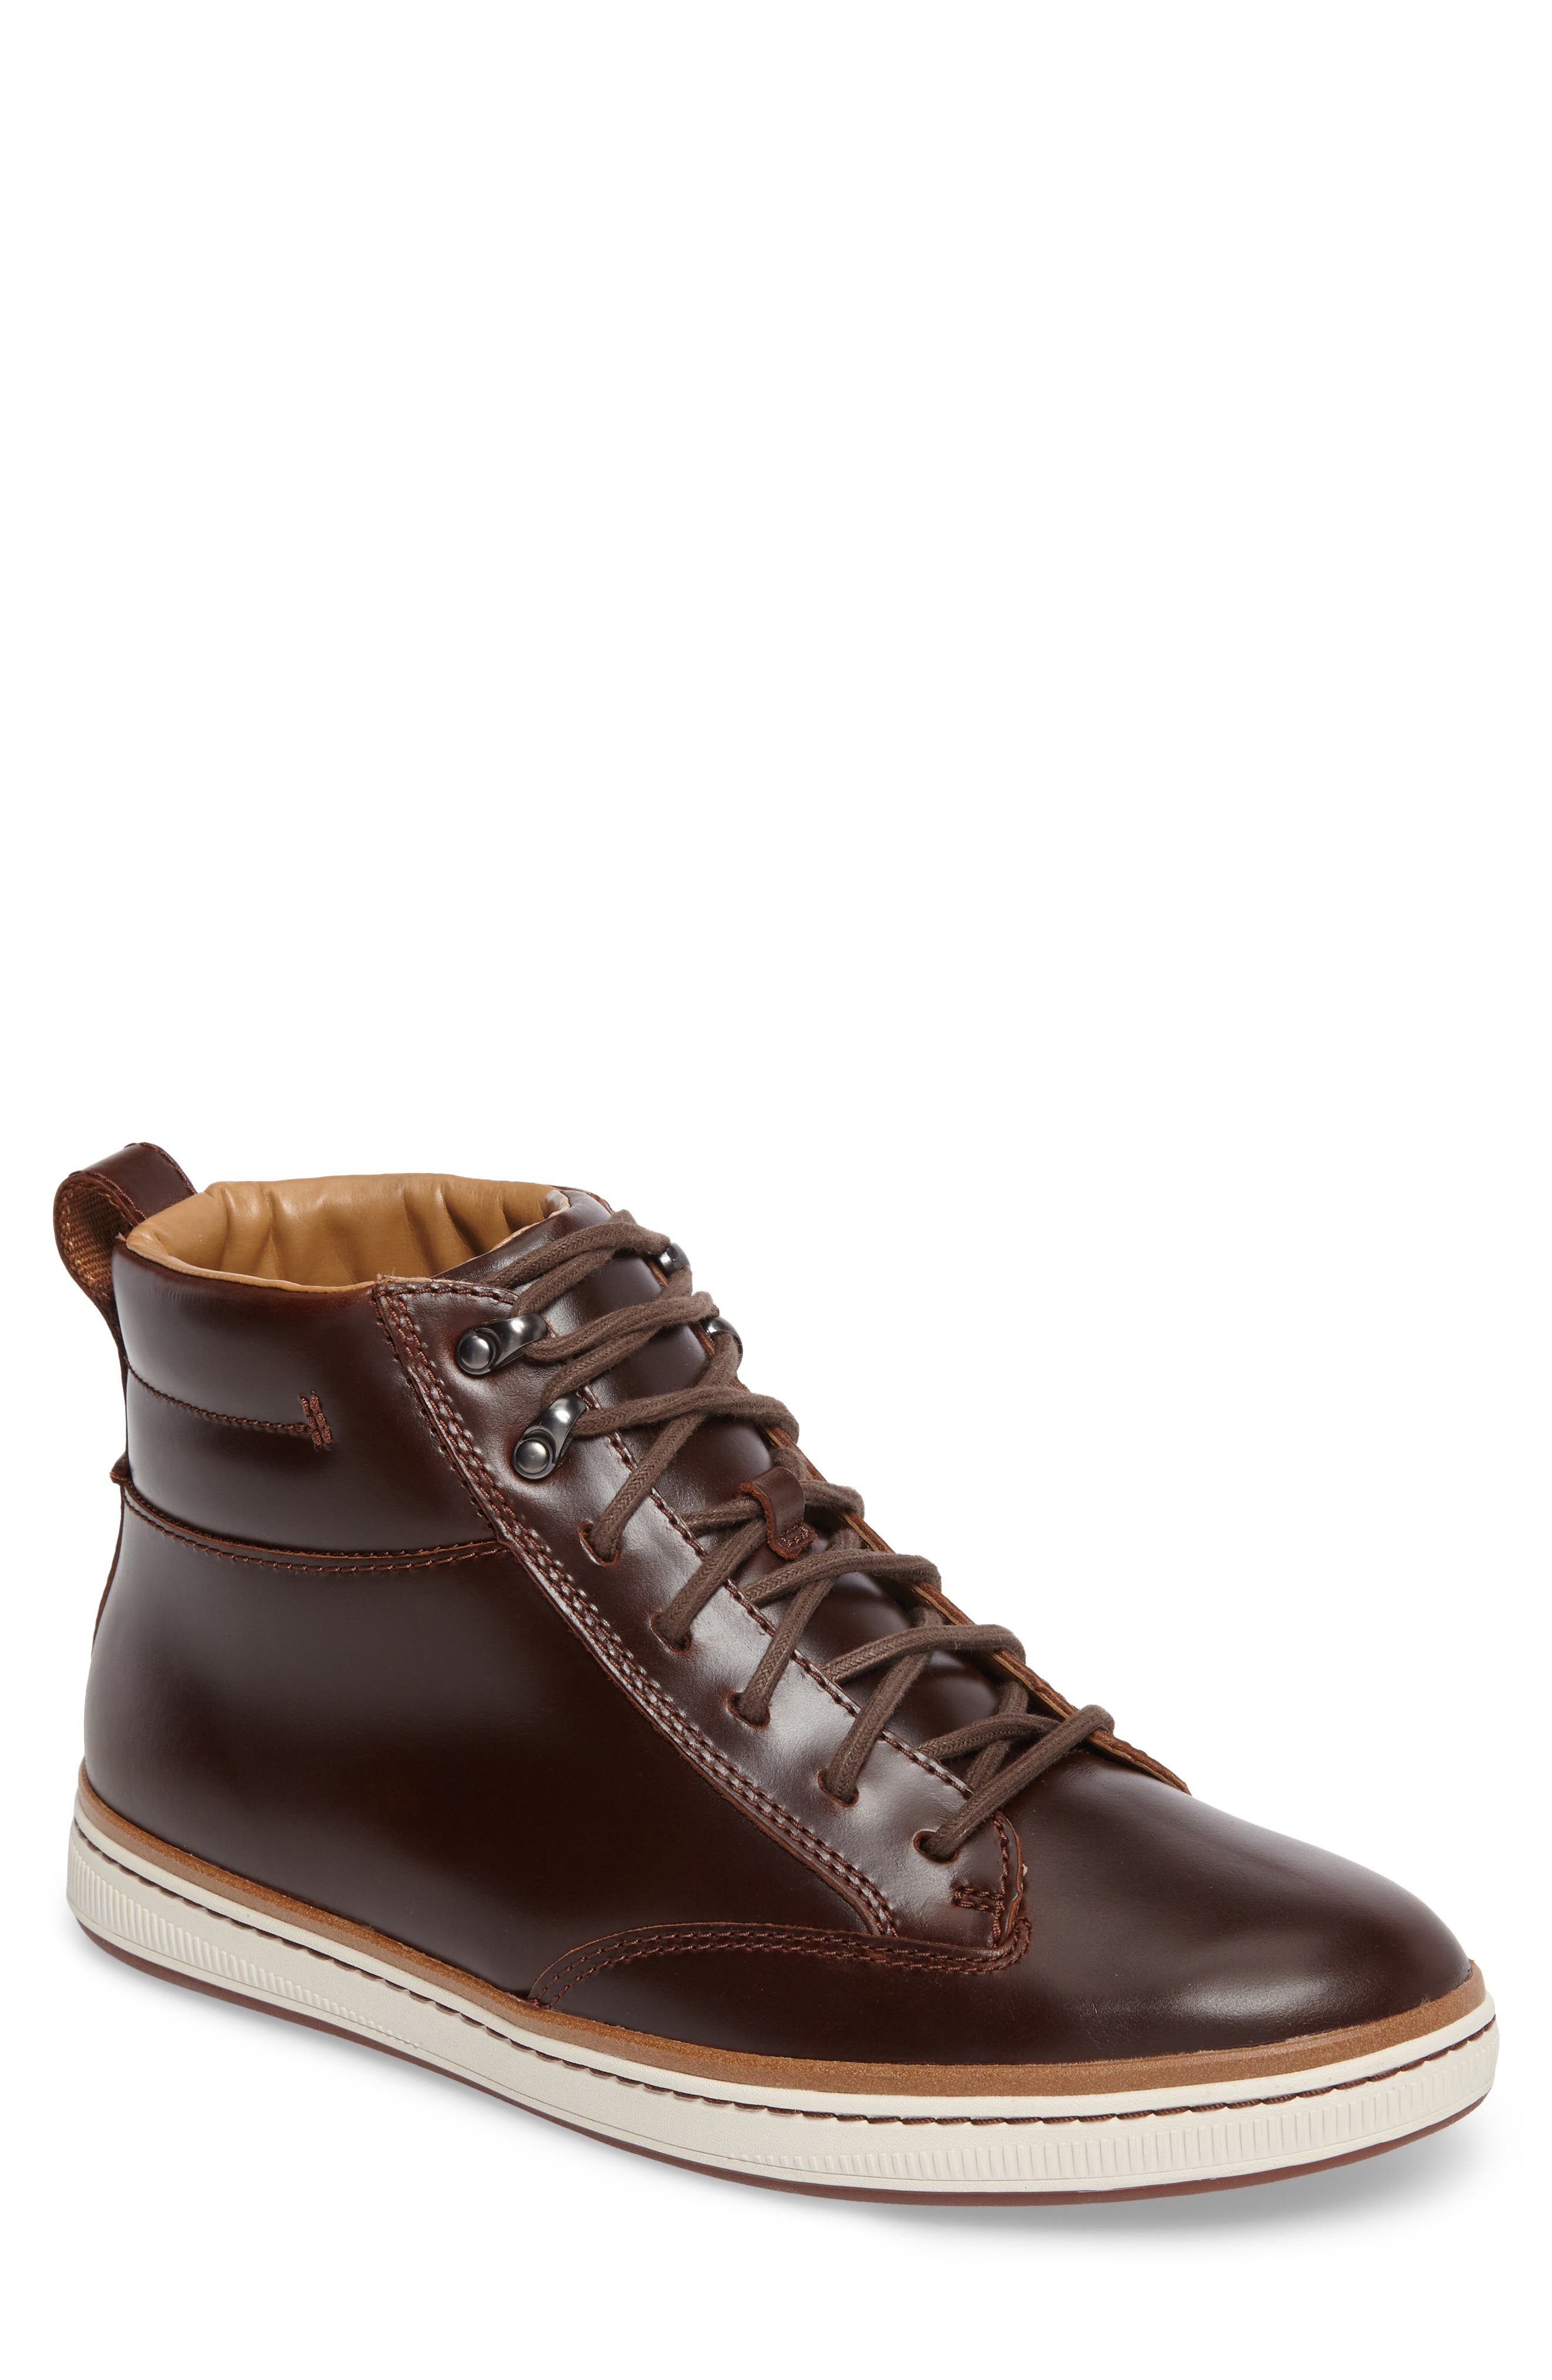 Main Image - Clarks® Norsen Mid Water Resistant Plain Toe Boot with Faux-Fur Lining (Men)